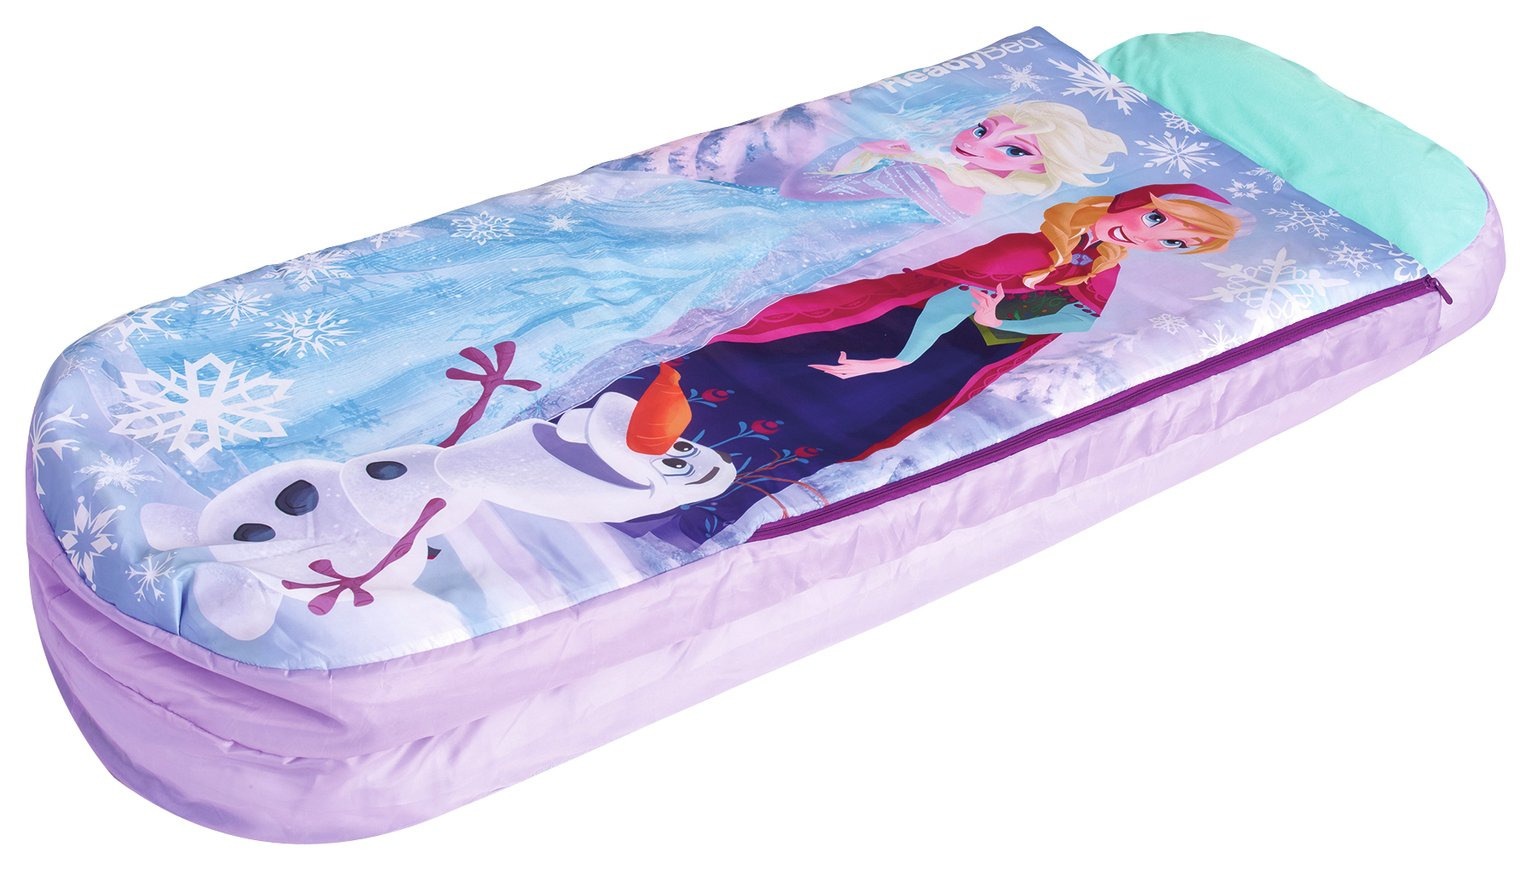 Disney Frozen Junior ReadyBed Air Bed and Sleeping Bag